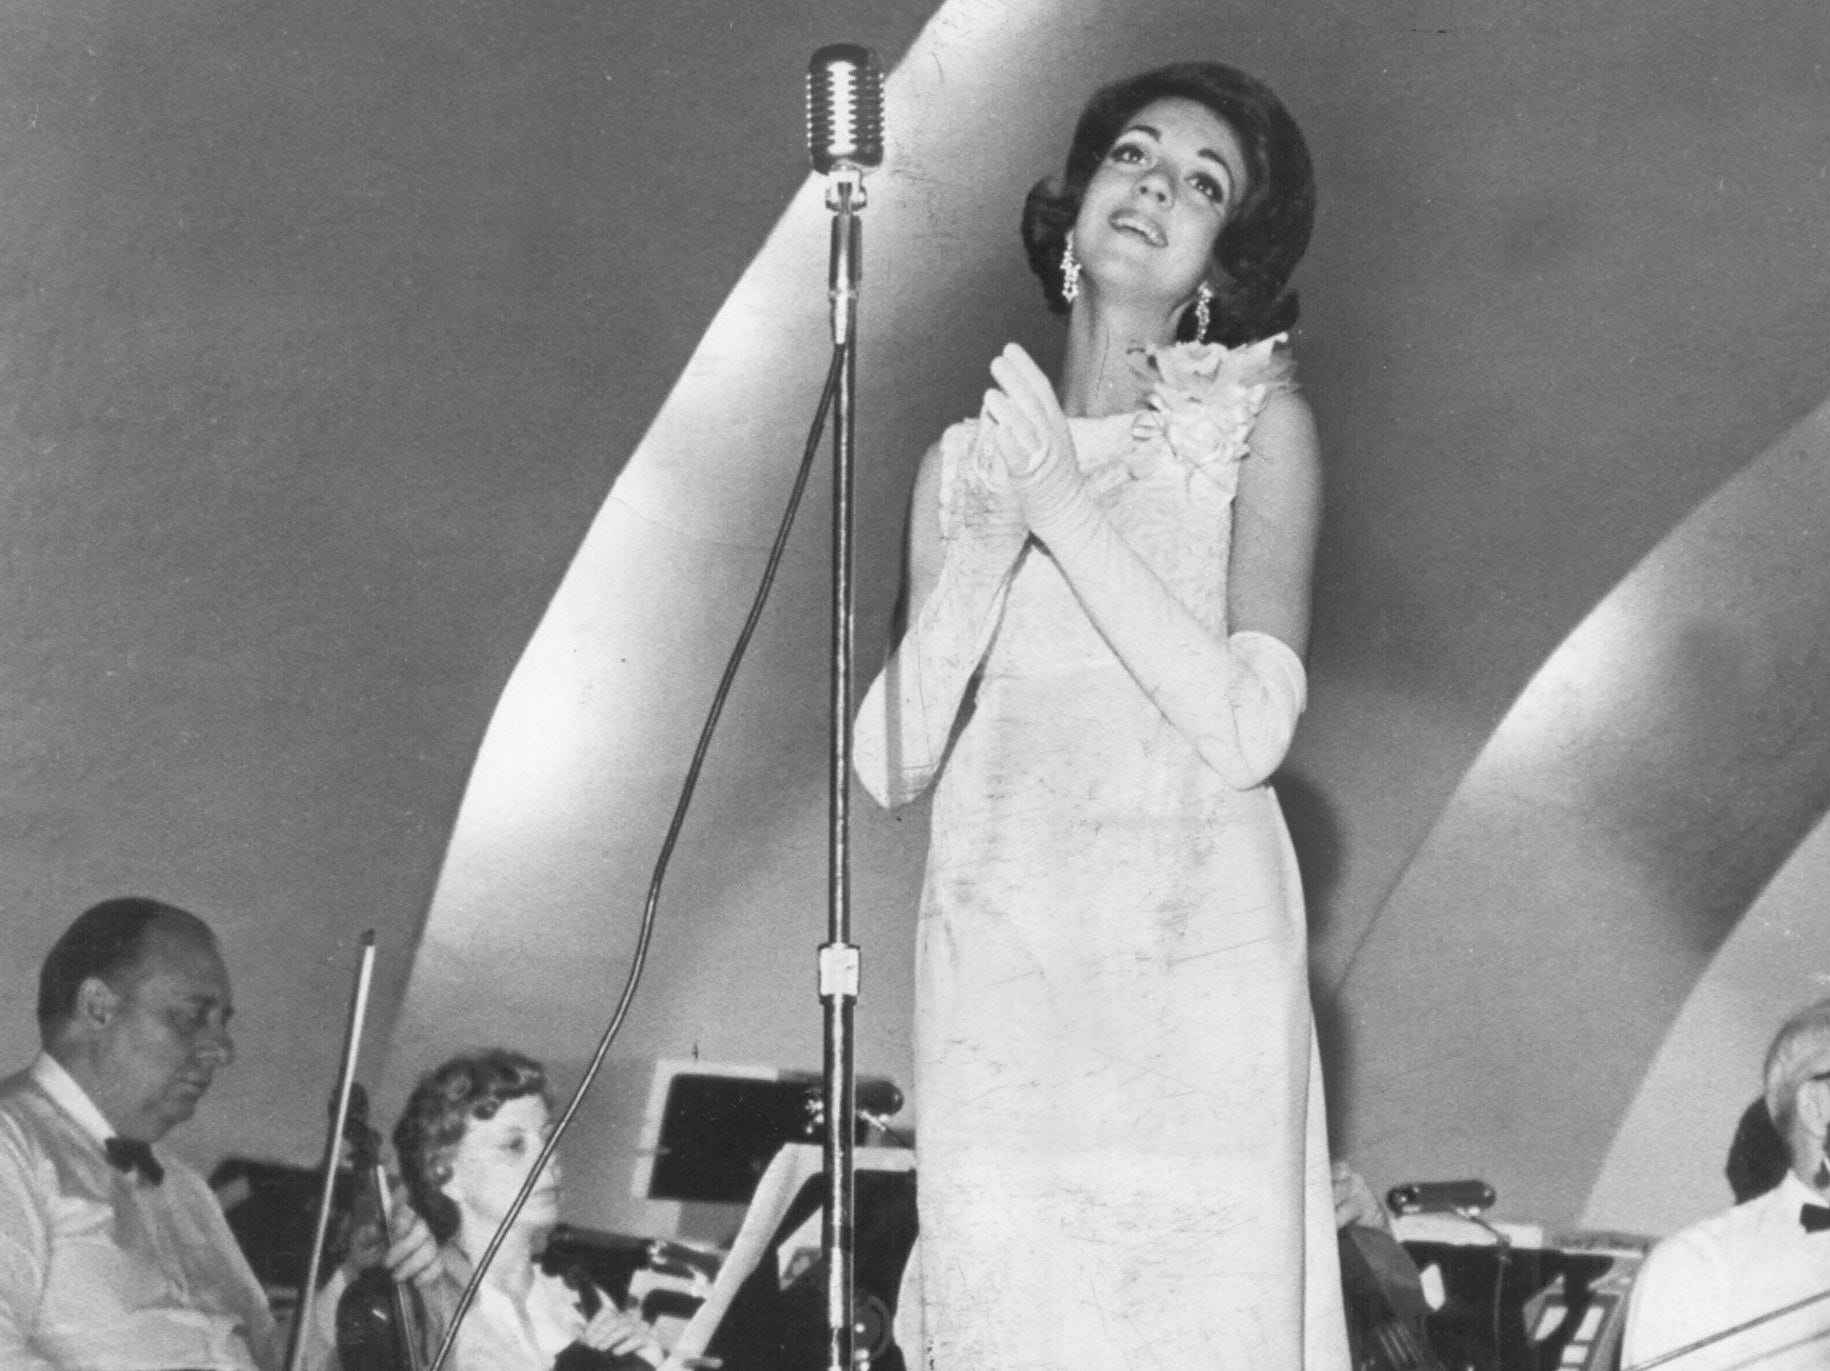 Coloratura soprano Gail Robinson received a standing ovation at the Overton Park Shell on 3 Aug 1966 and sang two encores for the crowd of 2,200 in her first genuine solo performance. The 19-year-old sophomore at Memphis State University recently returned from New York, where she trained for two months with Metropolitan Opera stars. She is one of six national winners in Metropolitan Opera auditions in New York. She was the winner of this year?s Met regional tryouts. She is the daughter of Mr. and Mrs. M.L. Robinson of 1560 Estate Drive.